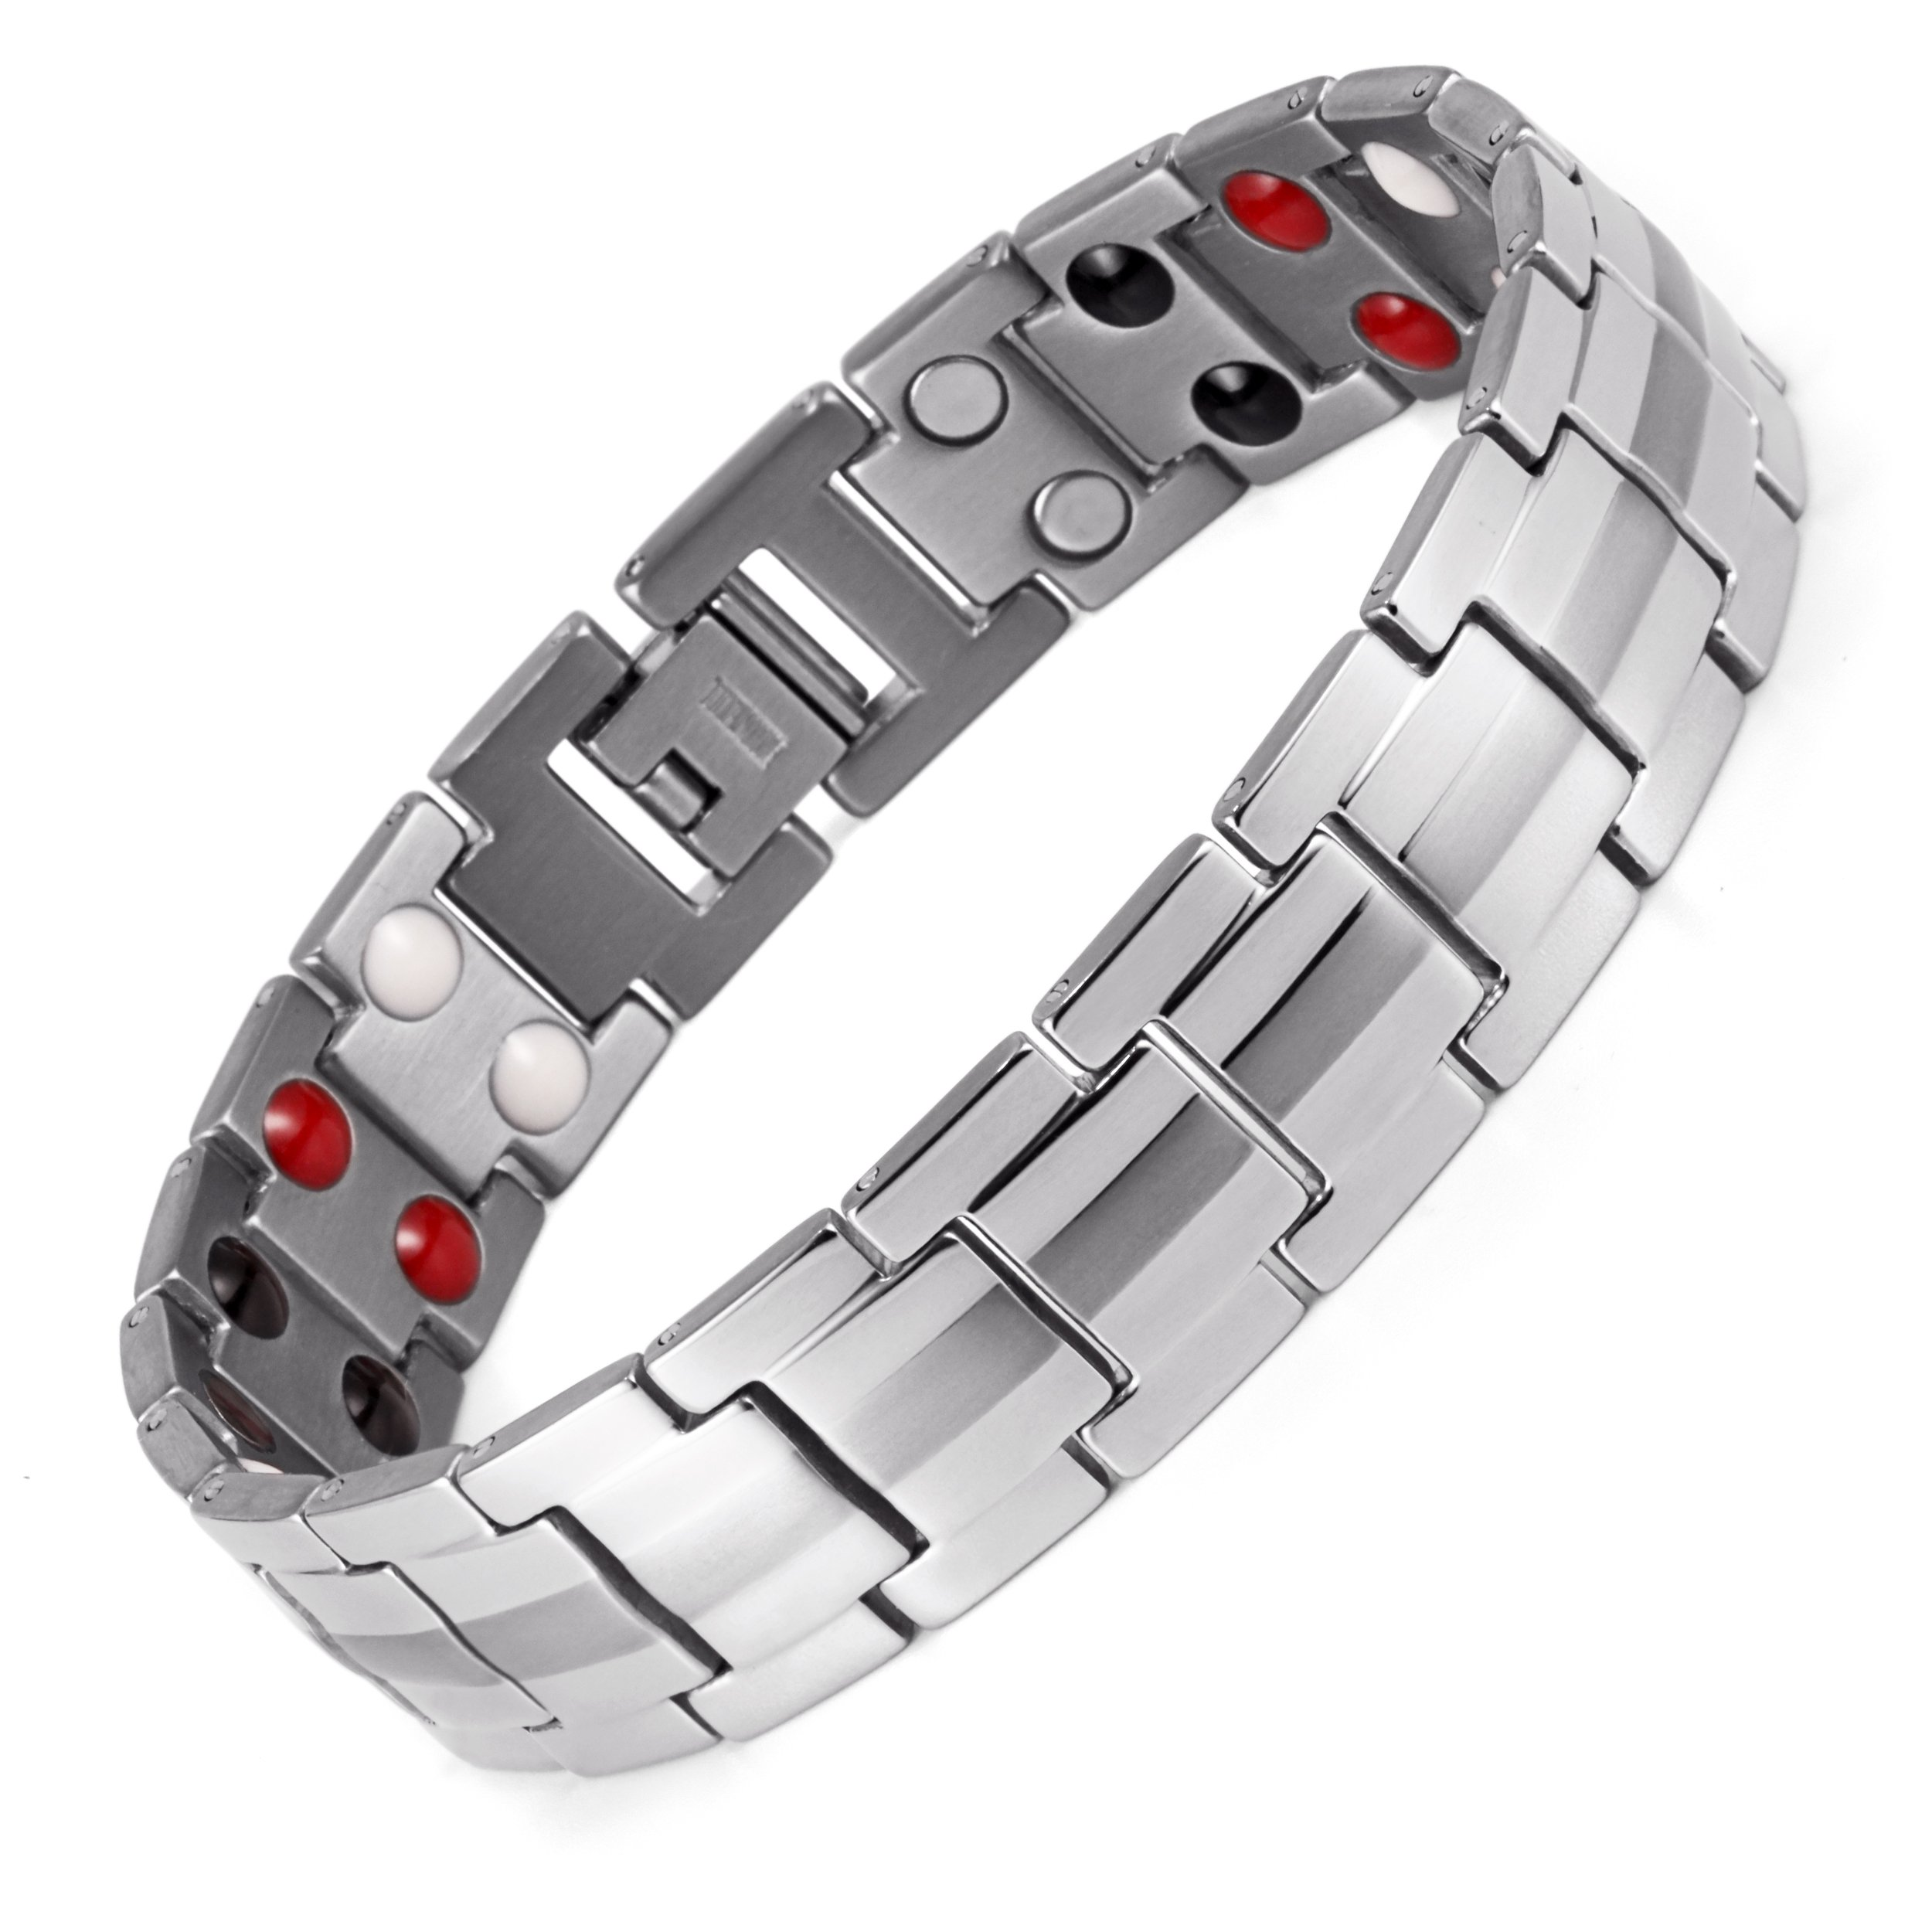 Lifestyle Titanium Magnetic Therapy Bracelet Pain Relief for Arthritis and Carpal Tunnel magnets as health care element are embedded in each bracelet. (Titanium Double Magnets)